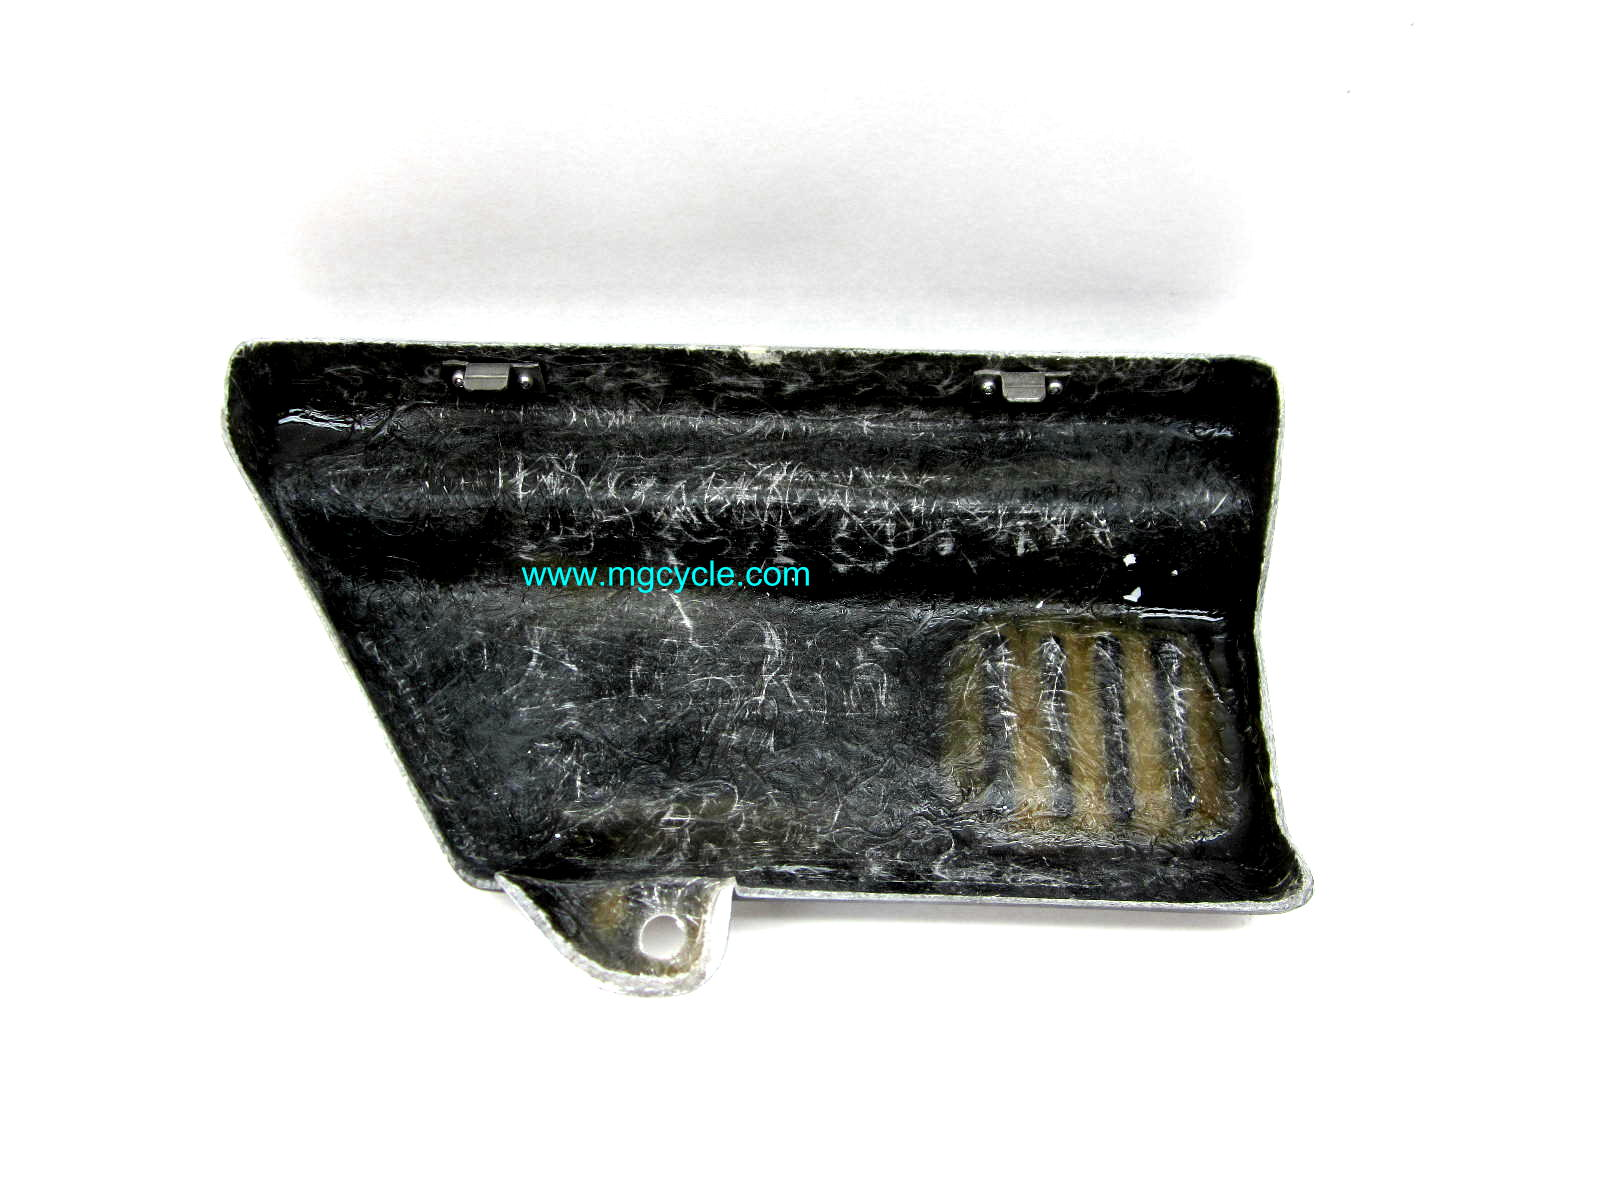 Side cover, LM1, LM2, CX100, 1000S left side, fiberglass